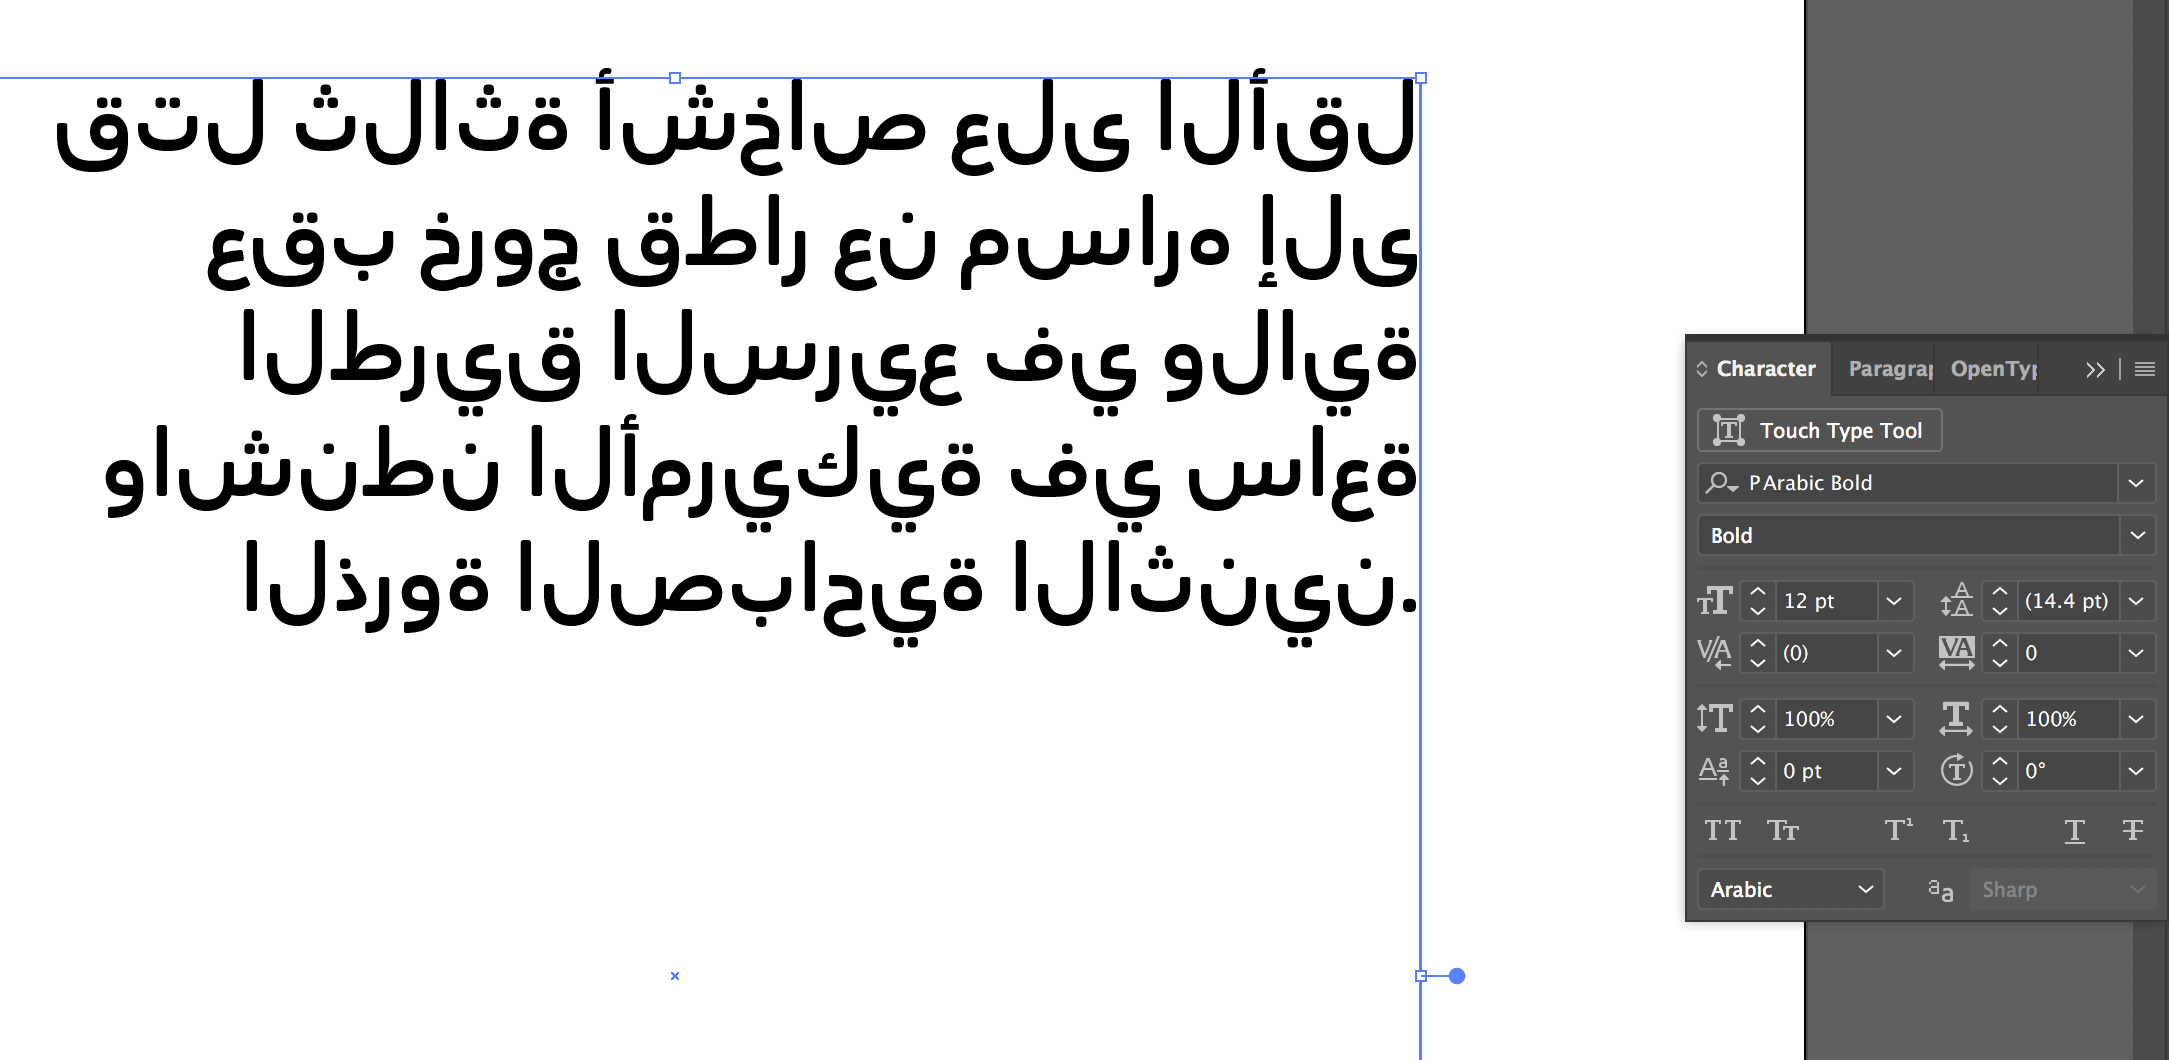 Arabic in some software apps Isolated, in some apps fine